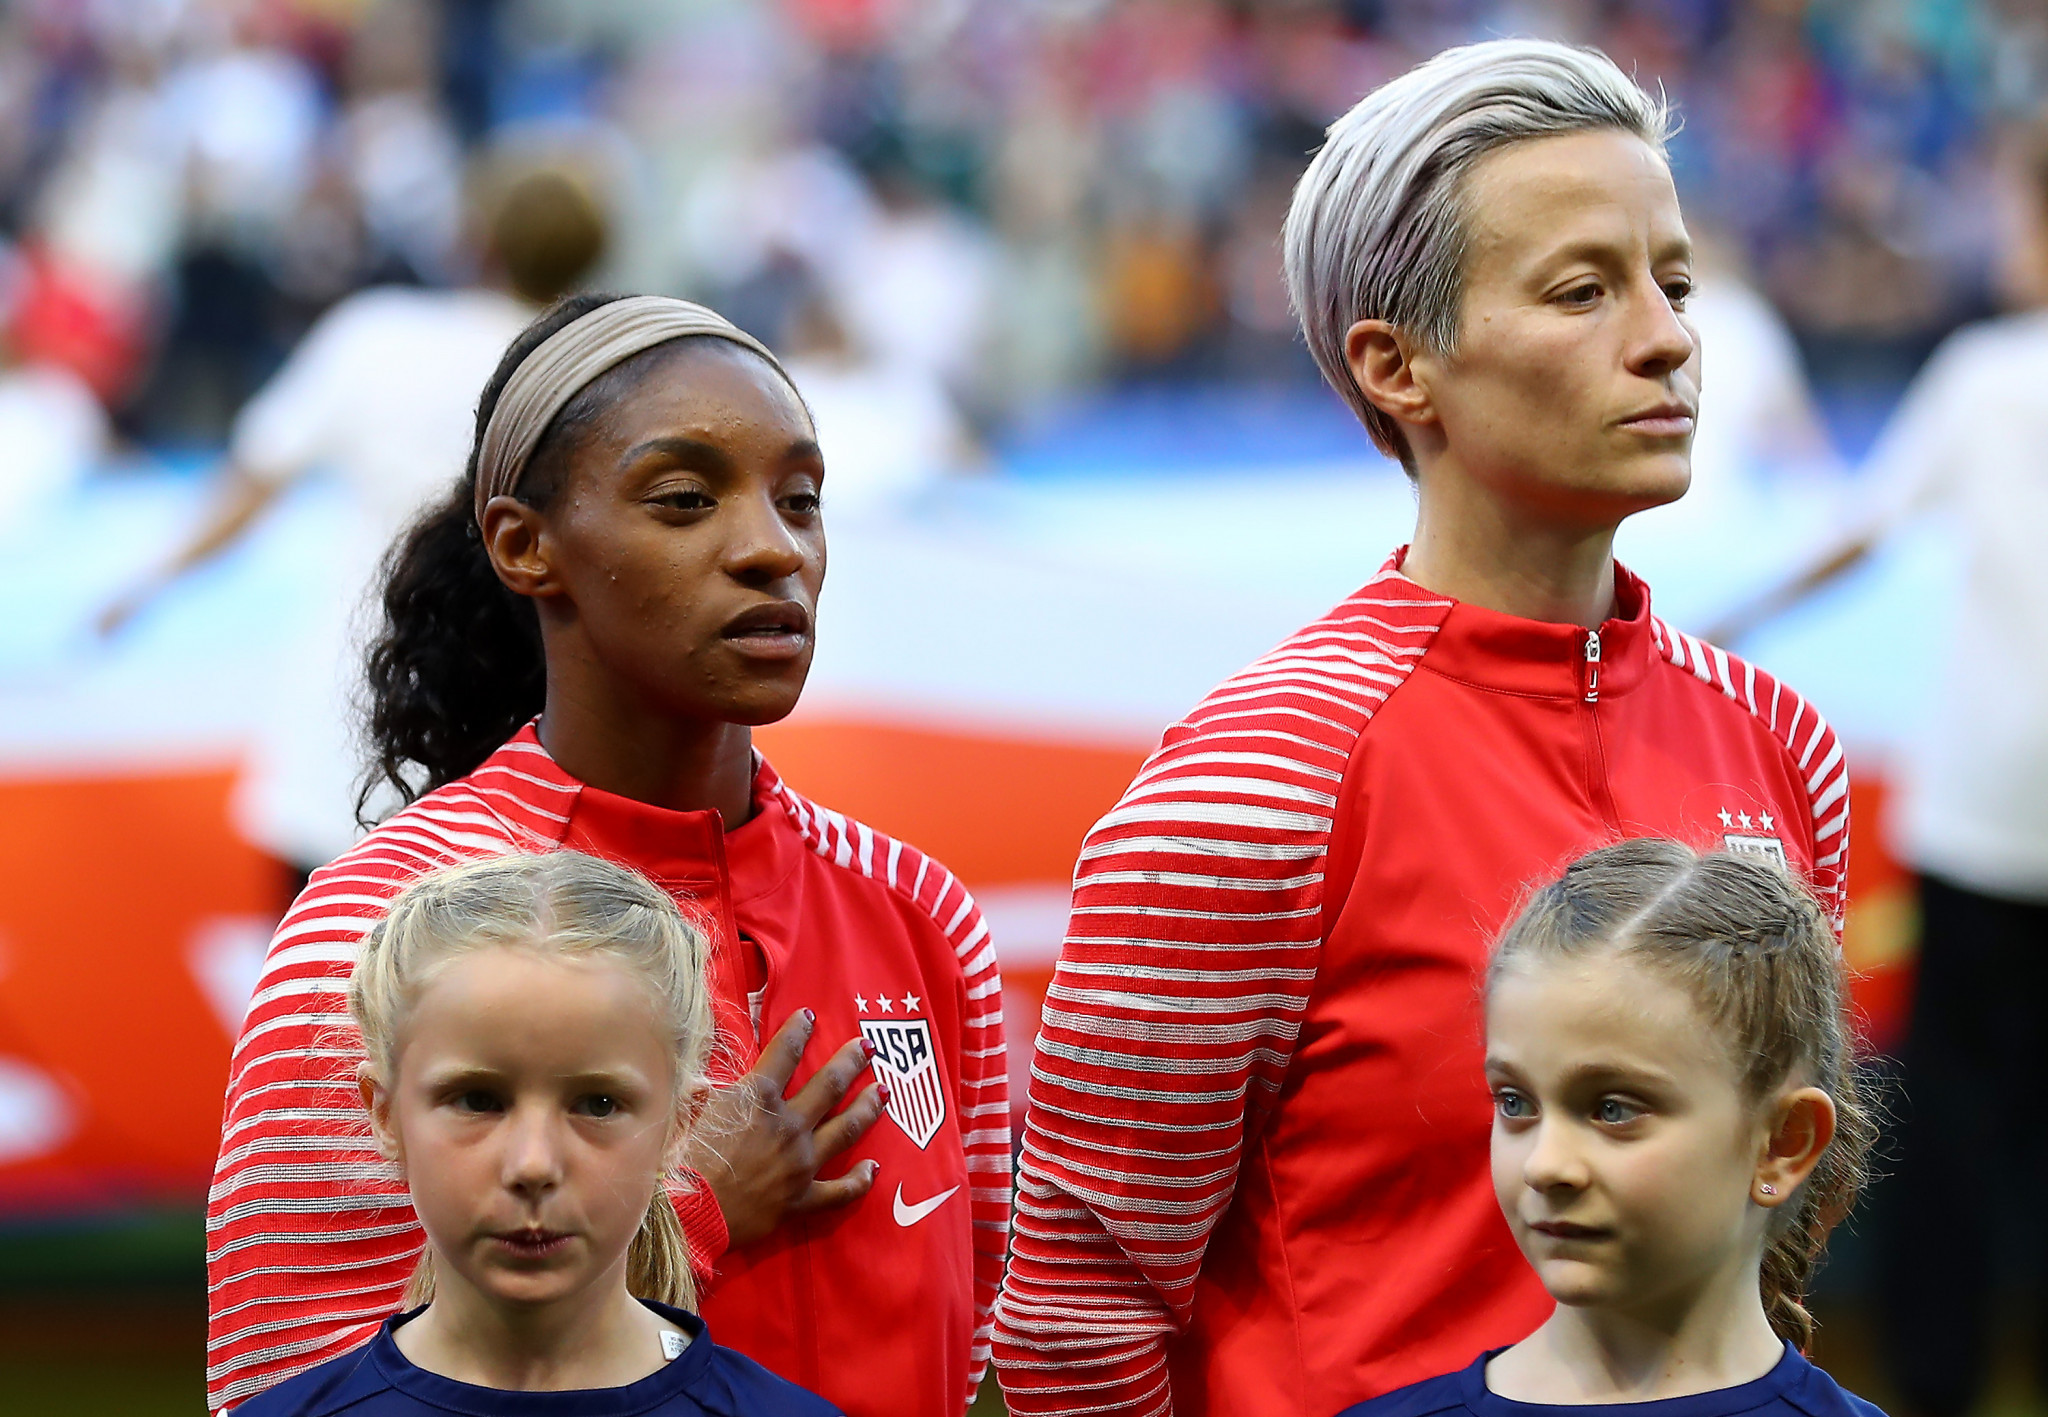 American footballer Megan Rapinoe refuses to sing the national anthem before each match ©Getty Images